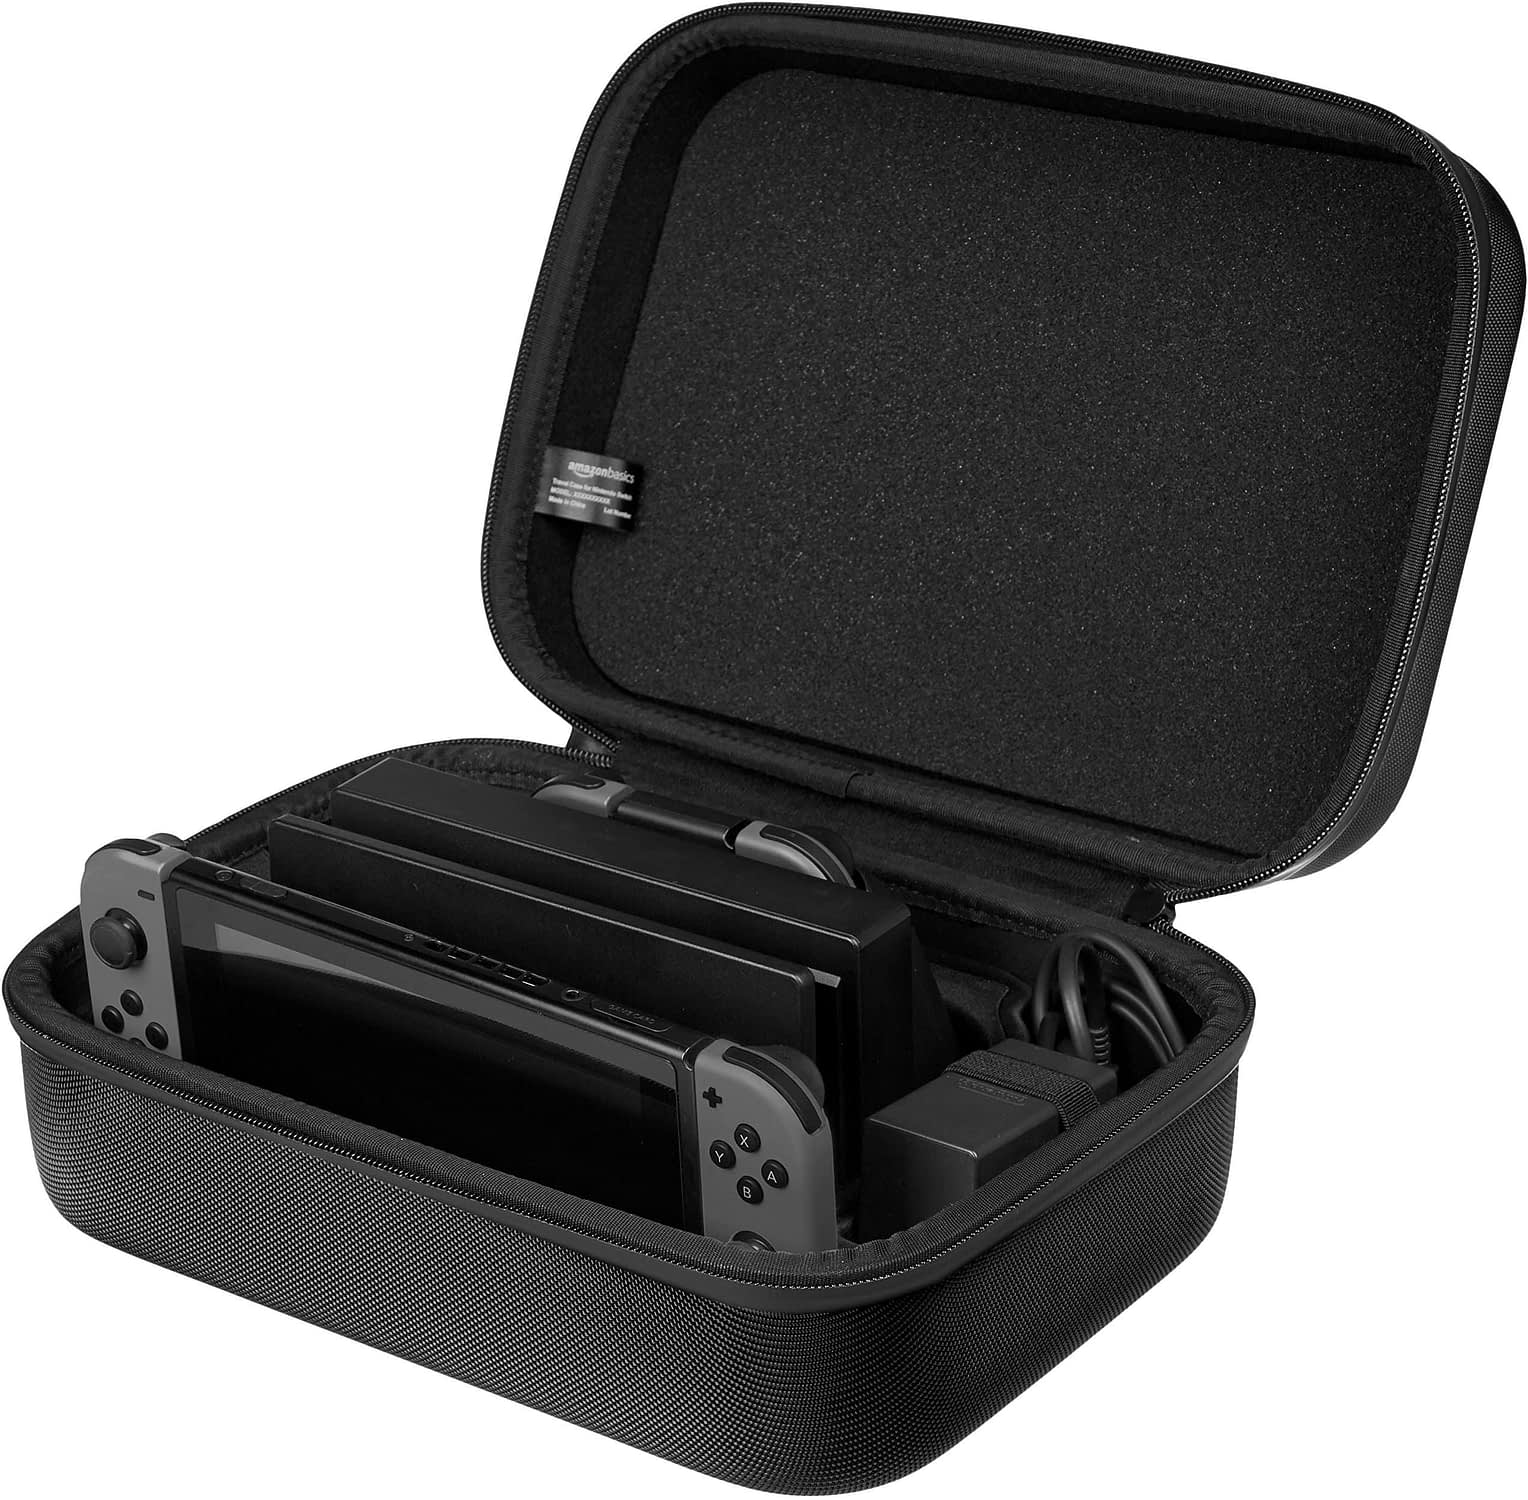 Amazonbasics - best switch protective carrying case